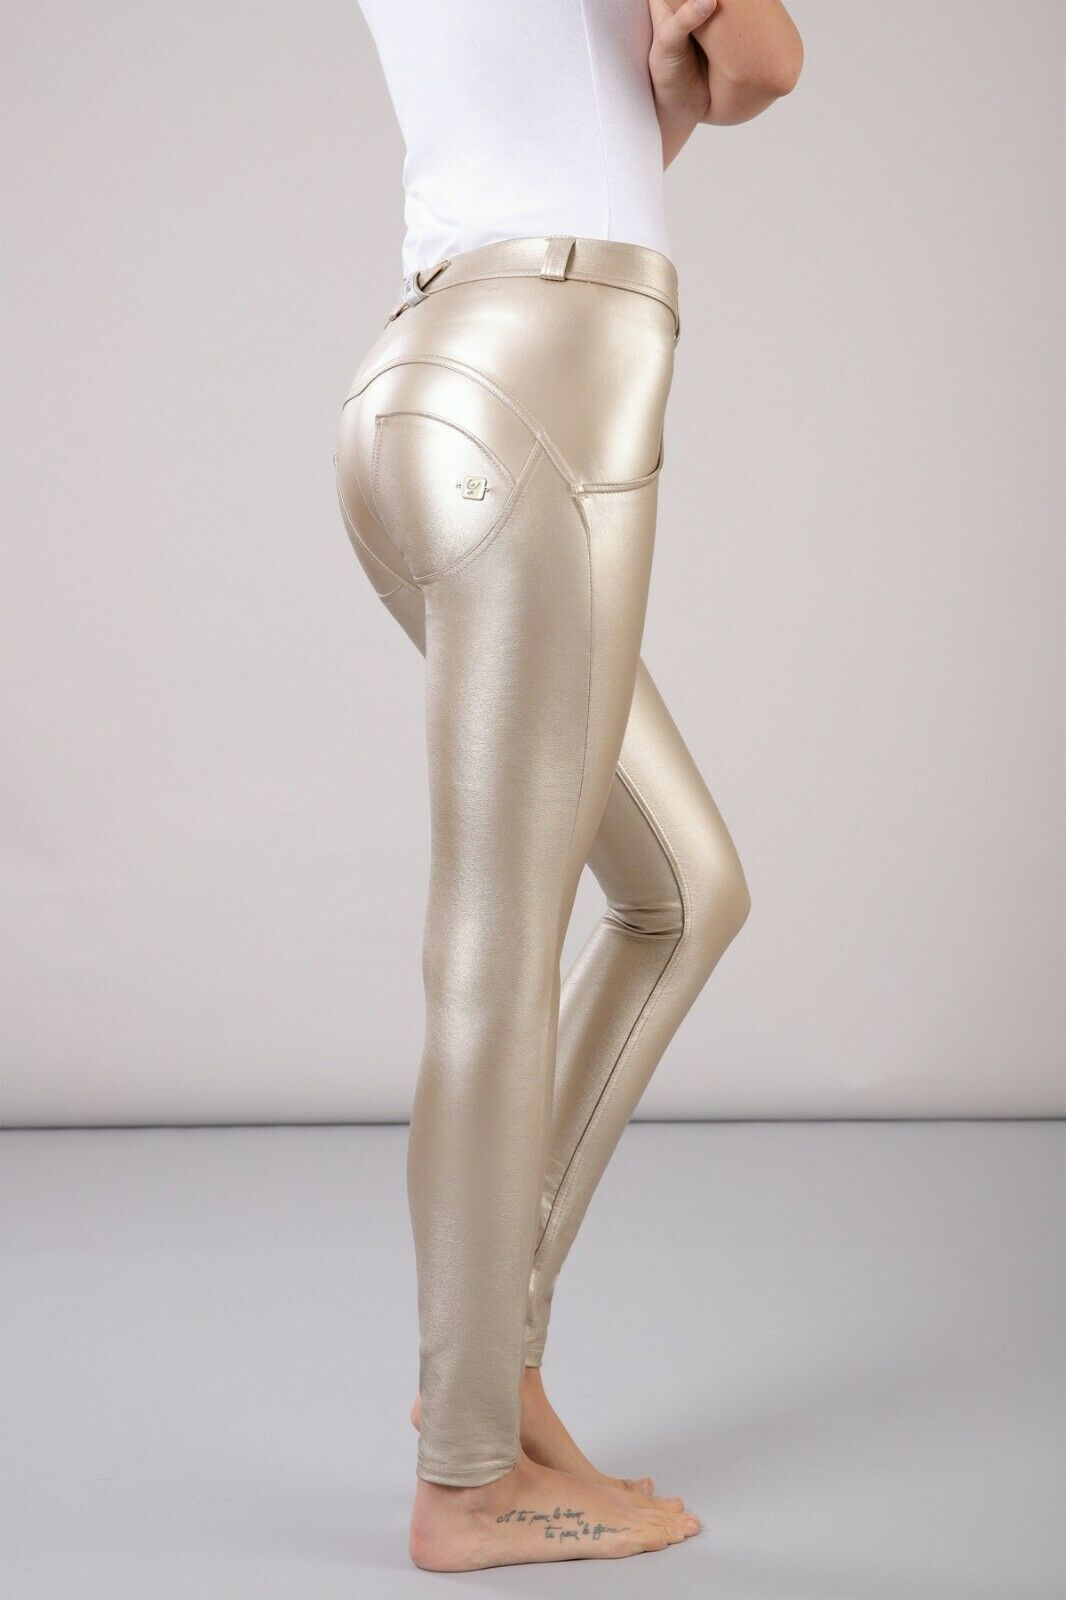 FREDDY WR.UP® SHAPING EFFECT PANTS - LOW WAIST -SUPER SKINNY - FAUX LEATHER gold